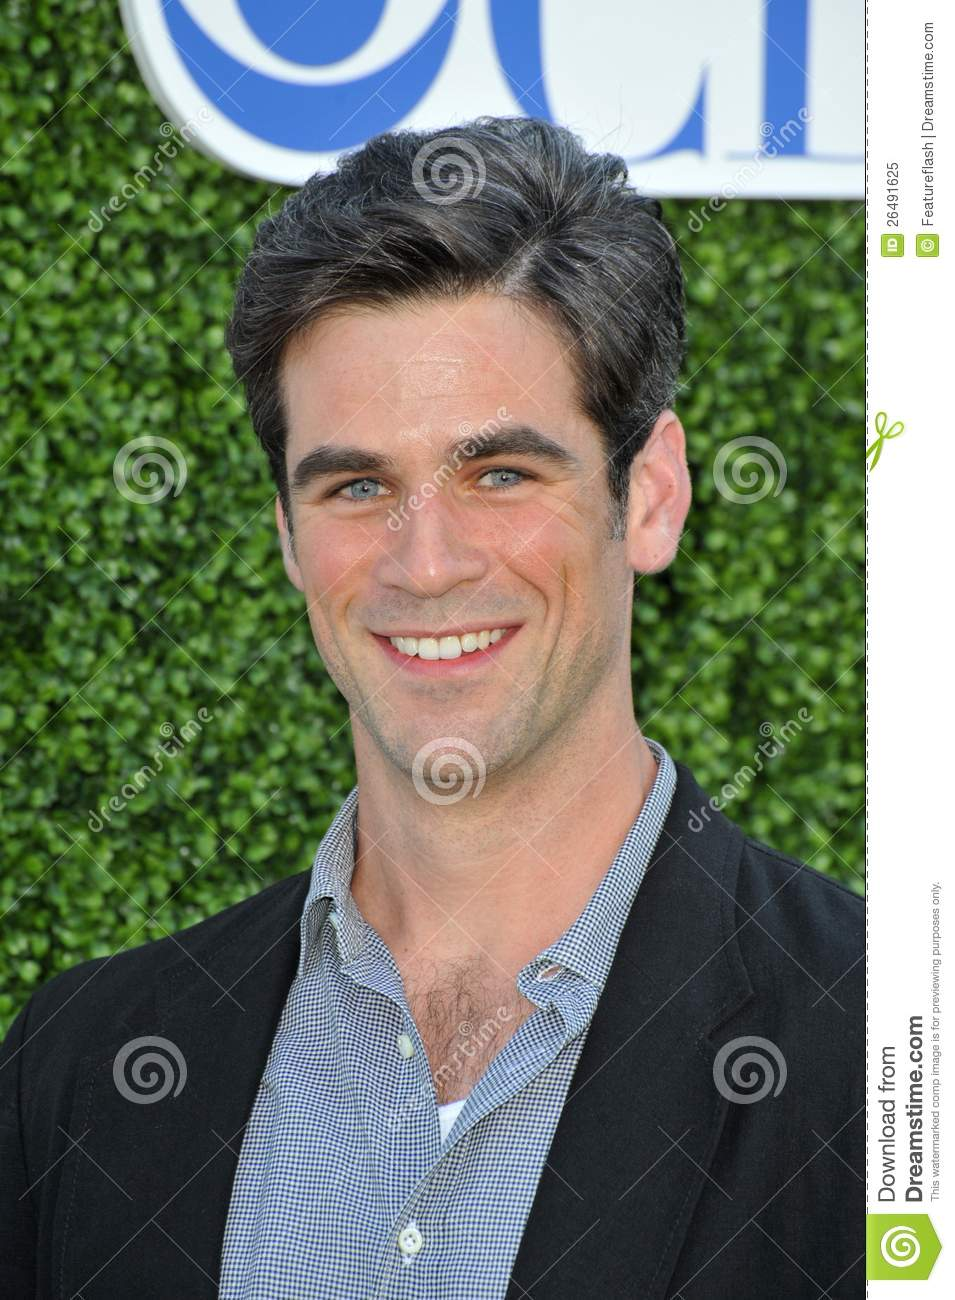 eddie cahill instagrameddie cahill friends, eddie cahill charmed, eddie cahill instagram, eddie cahill under the dome, eddie cahill facebook, eddie cahill height weight, eddie cahill, eddie cahill wife, eddie cahill twitter, eddie cahill 2015, eddie cahill actor, eddie cahill csi, eddie cahill nikki uberti, eddie cahill son, eddie cahill sex and the city, eddie cahill 2014, eddie cahill tattoo, eddie cahill imdb, eddie cahill shirtless, eddie cahill net worth